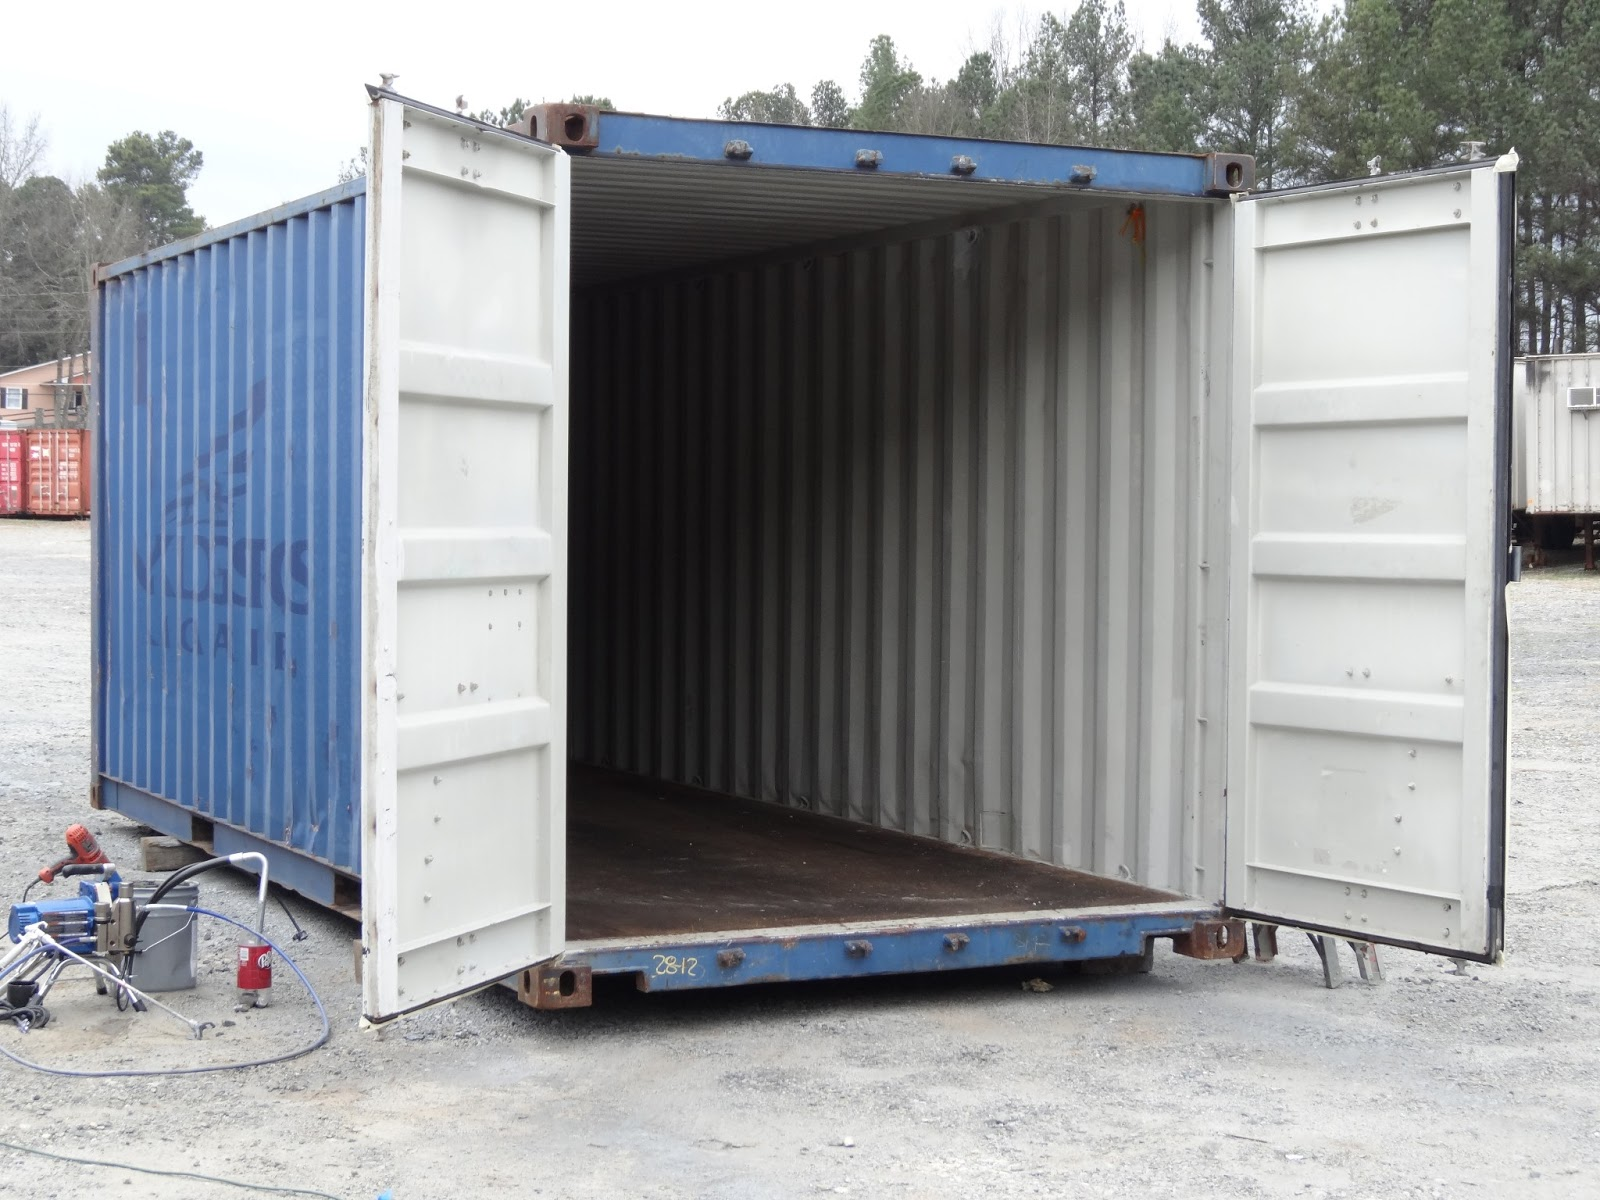 Le Meilleur How To Fix Hard To Open Shipping Container Doors Atlanta Ce Mois Ci